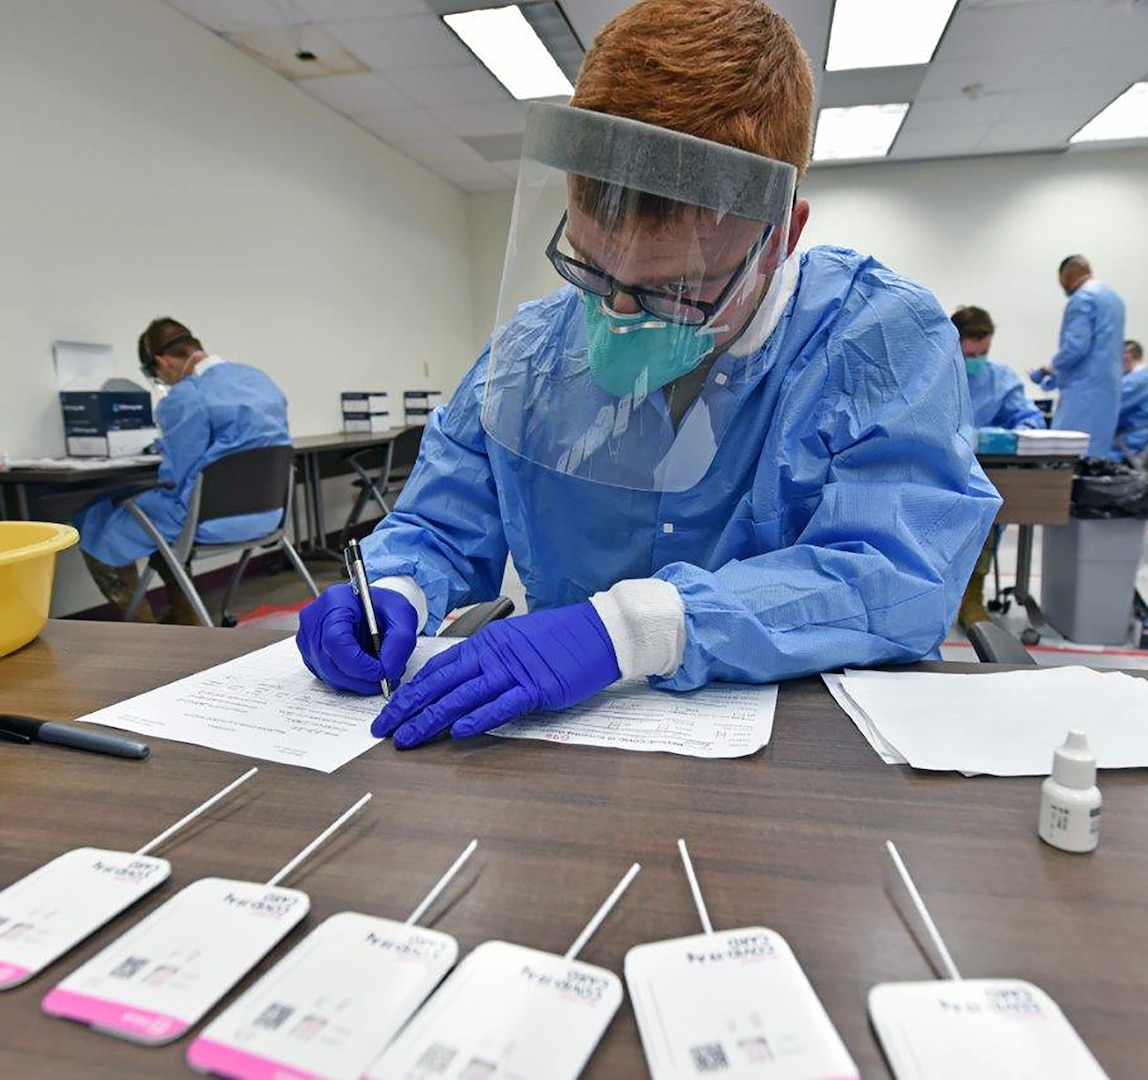 Pfc. Jagher Jones with Company A, 232nd Medical Battalion, testing COVID-19 antigen samples.